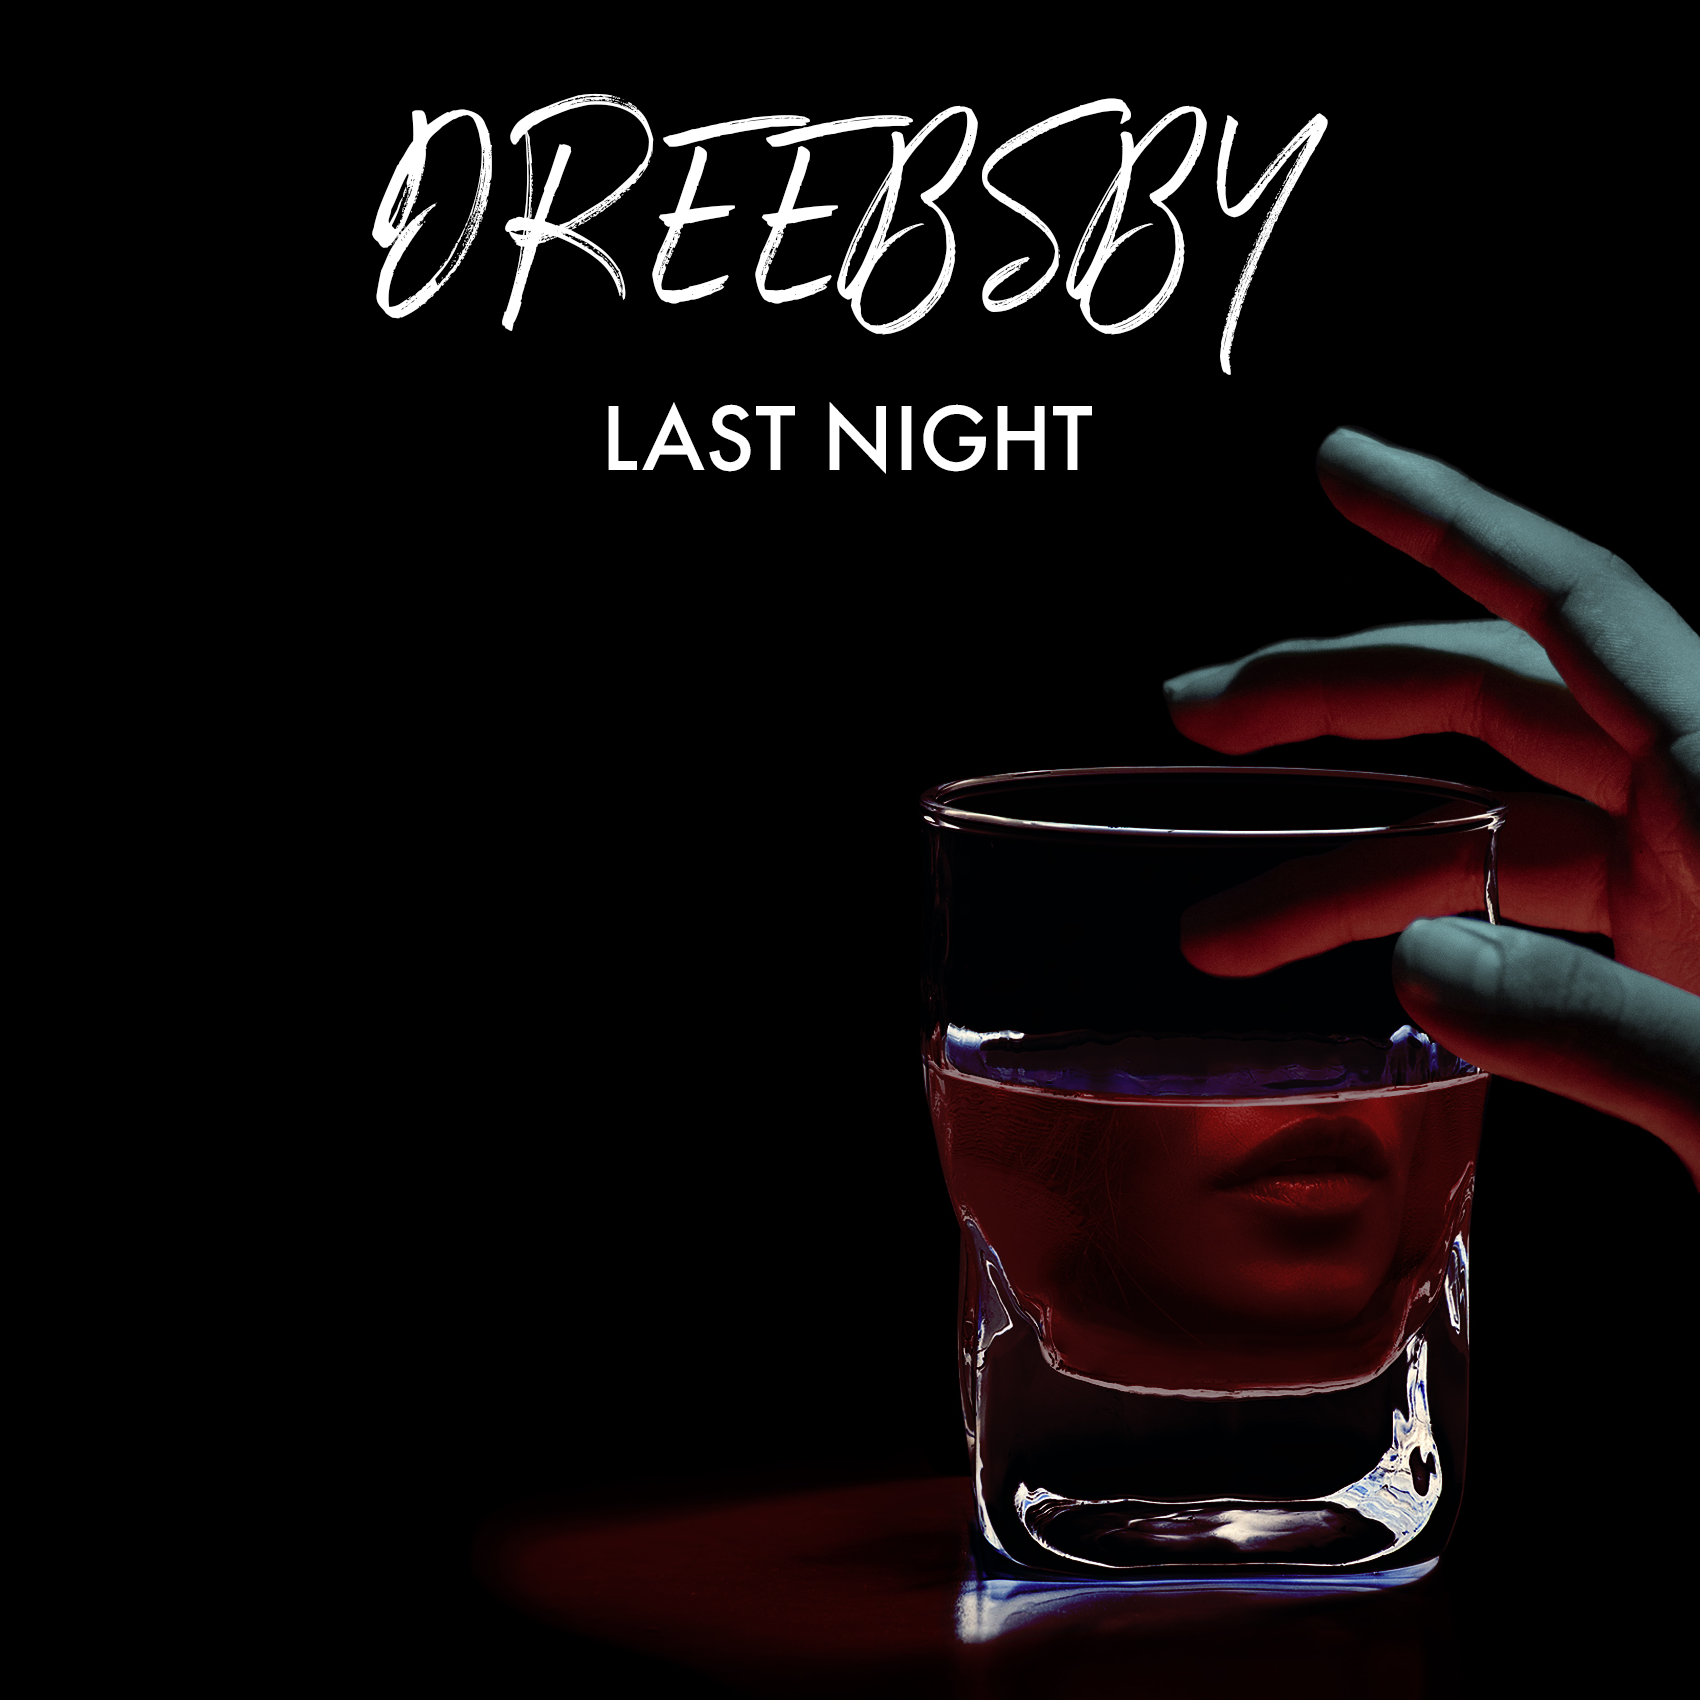 Dreebsby   last night %28single artwork%29